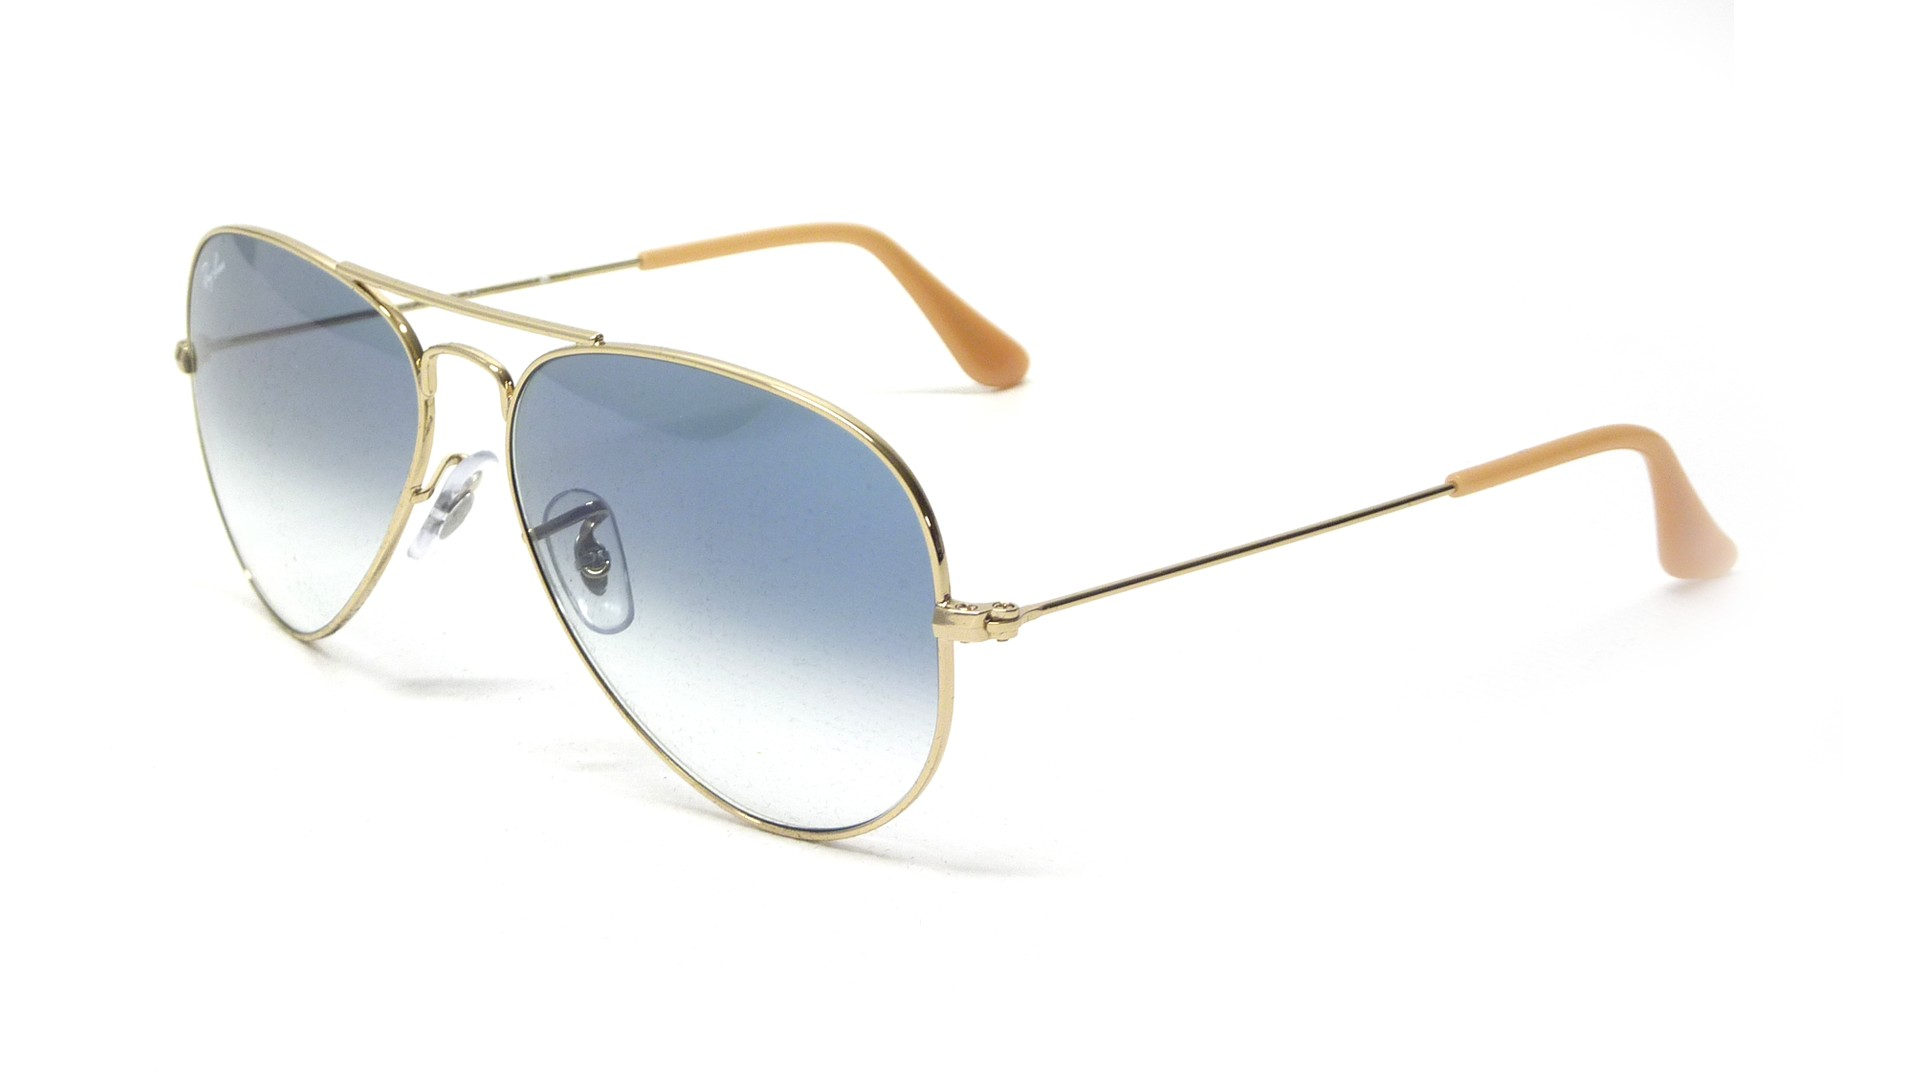 RAY BAN sunglasses (RB3025 001 3F58 Gafas)